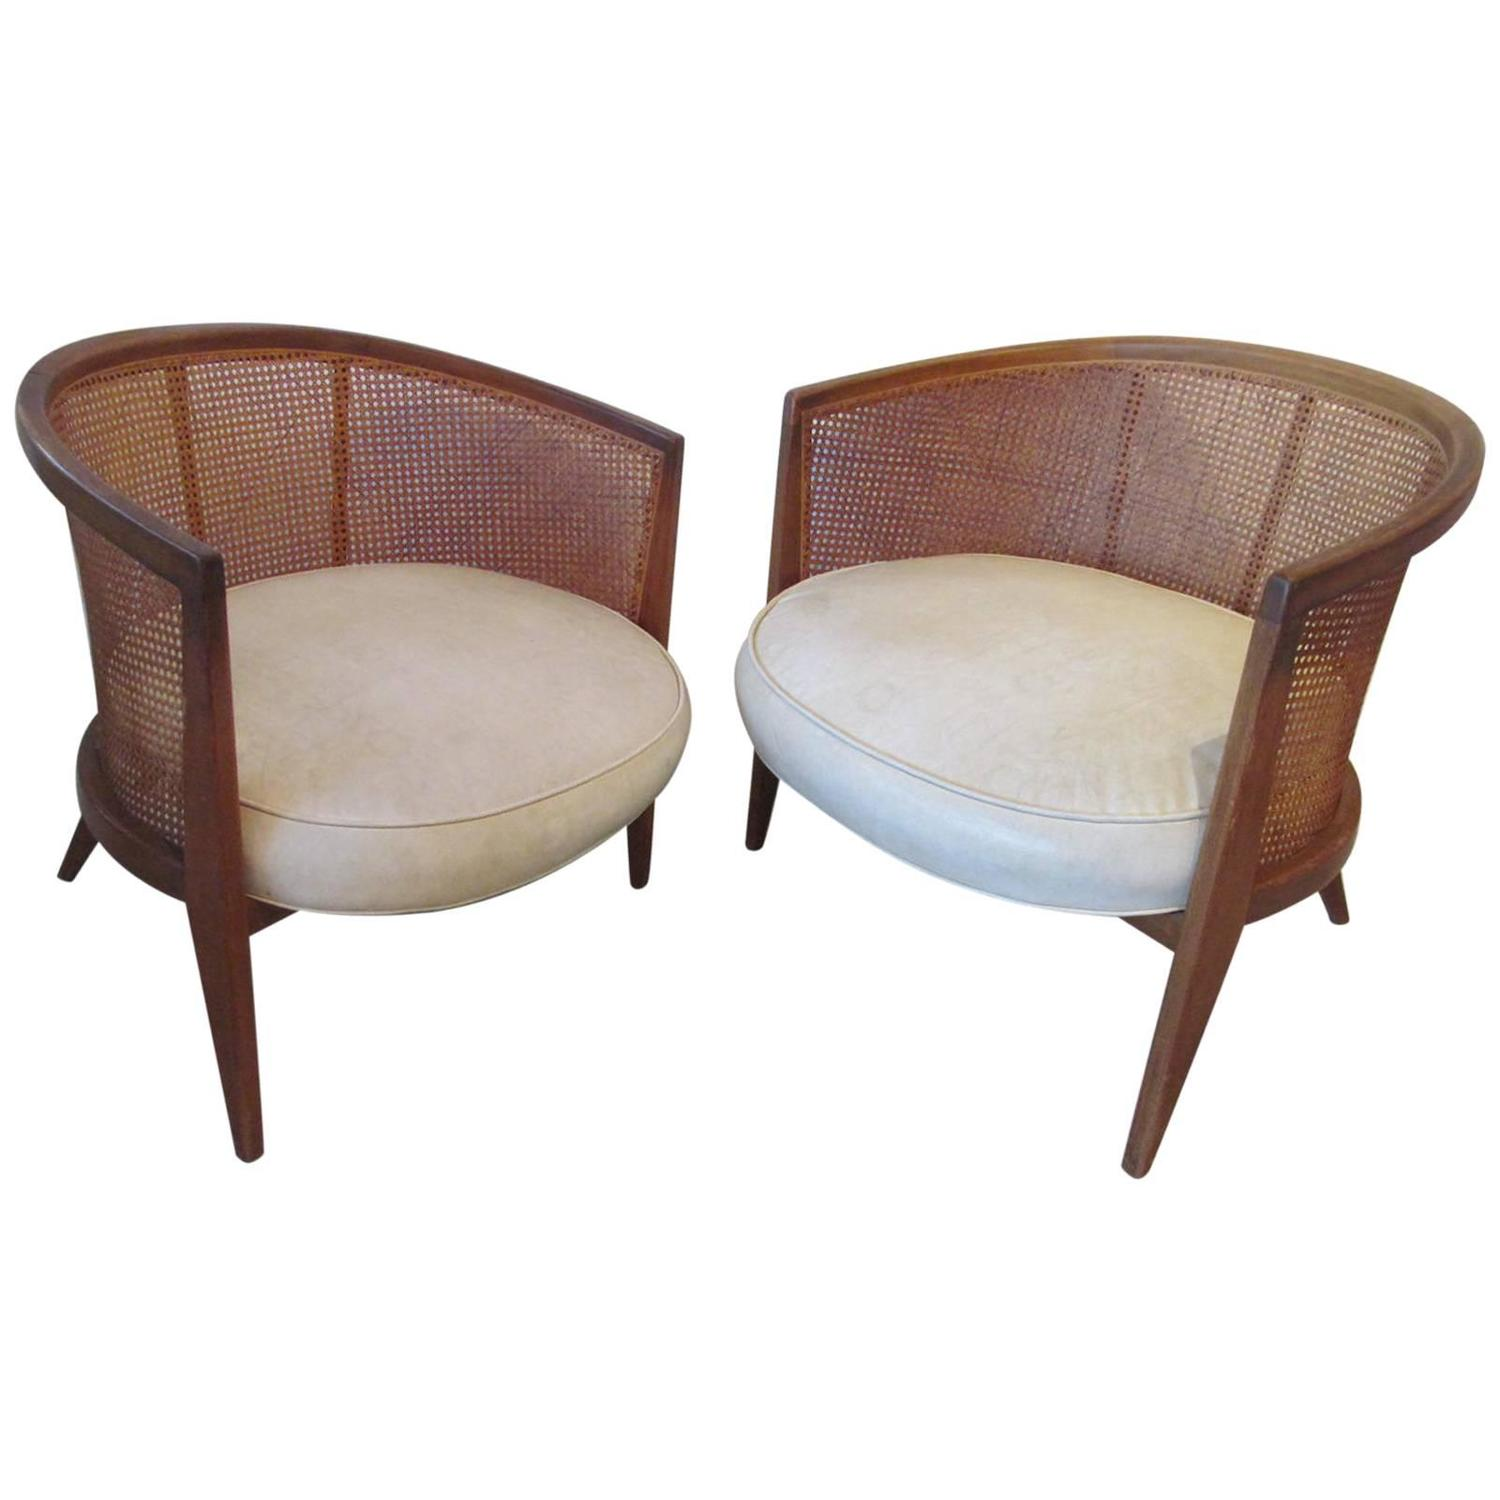 Amazing Model 1066 Harvey Probber Hoop Chairs For Sale At 1stdibs